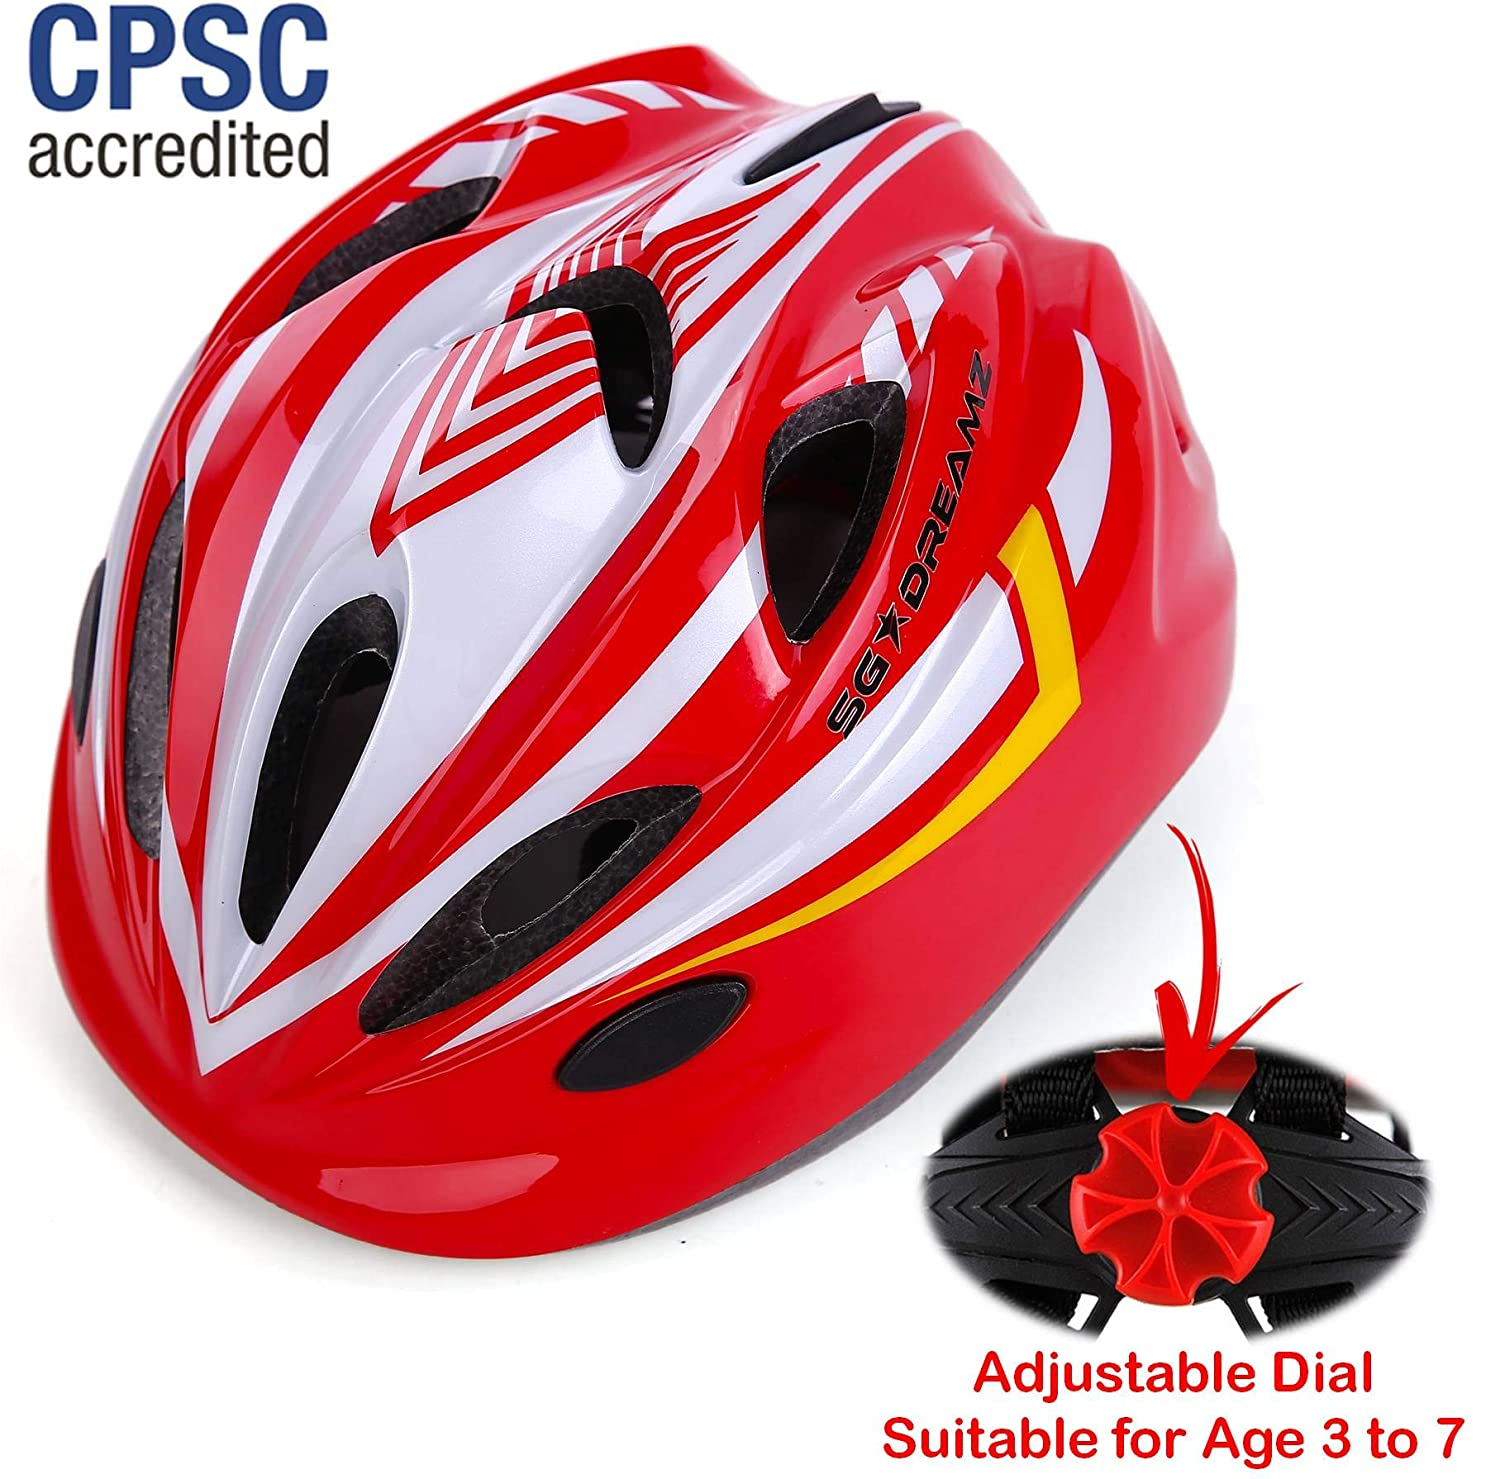 Scooter Kids Bike Helmet for Bicycle Cycling Skateboard Durable Toddler Kid Bicycle Helmets Boys and Girls Will Love Kasto Adjustable Harness from Age 3 to 7 for Head Size 19.6-22 inch